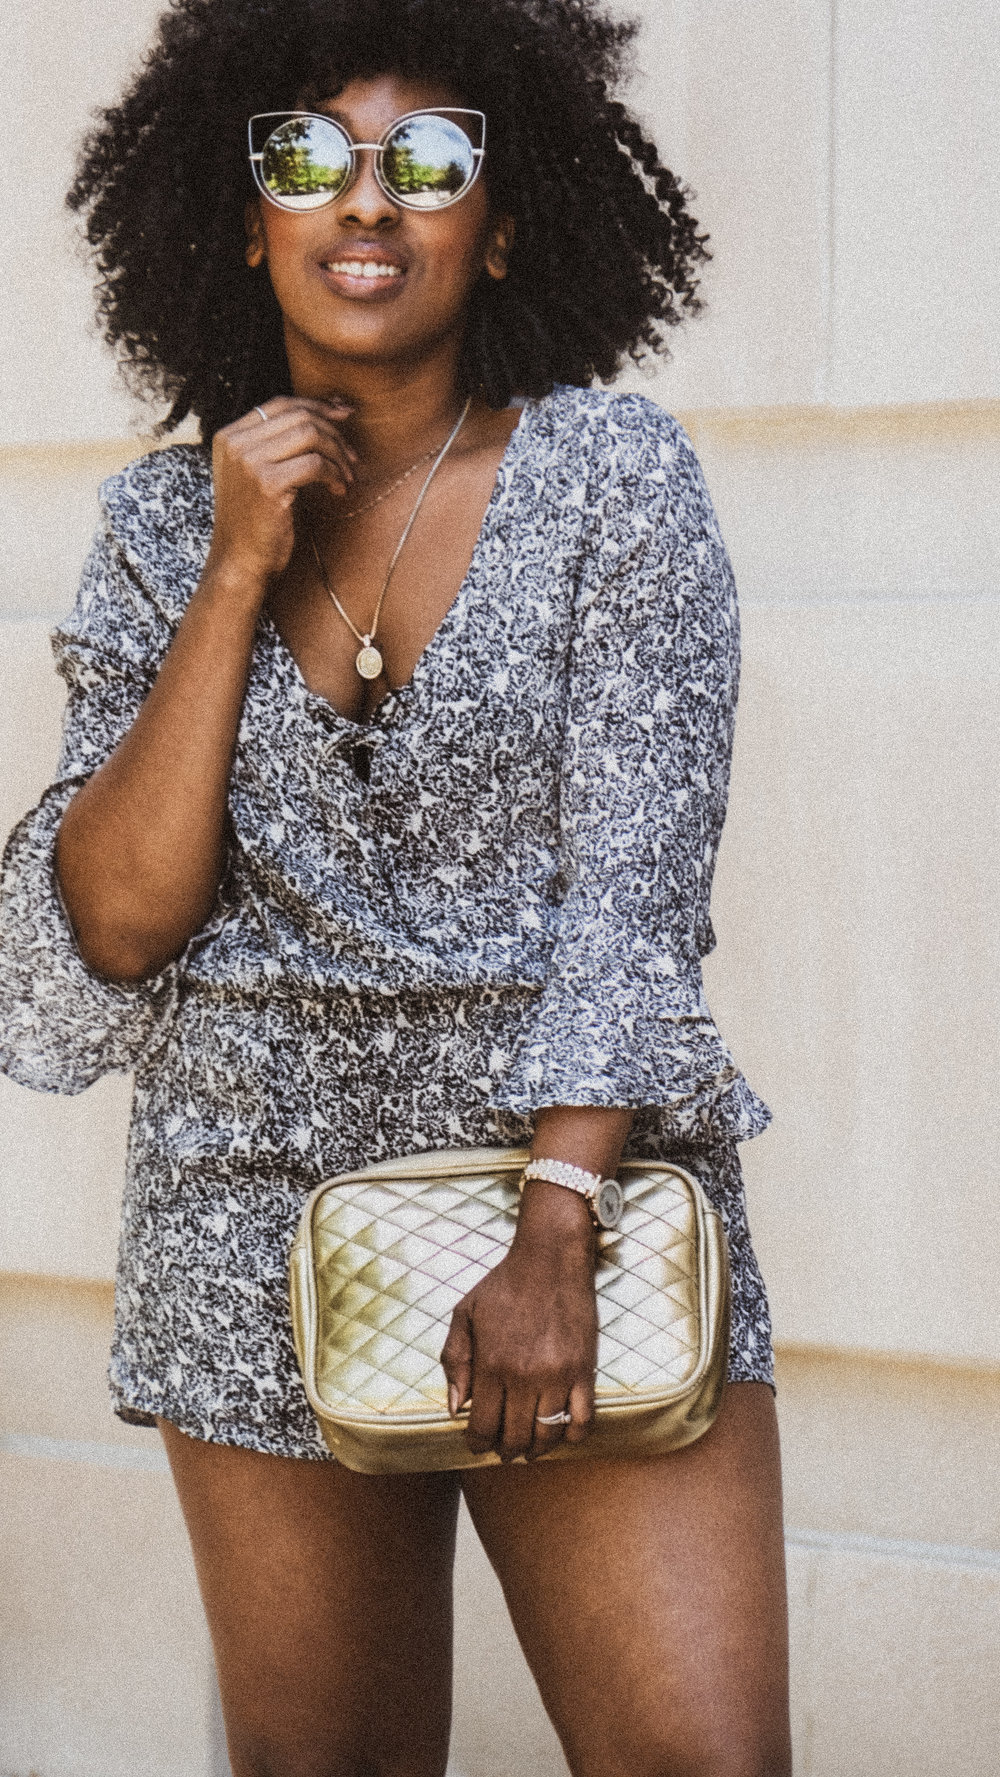 Romper // Sunglasses // Watch //  Necklace/ /    Handba  g